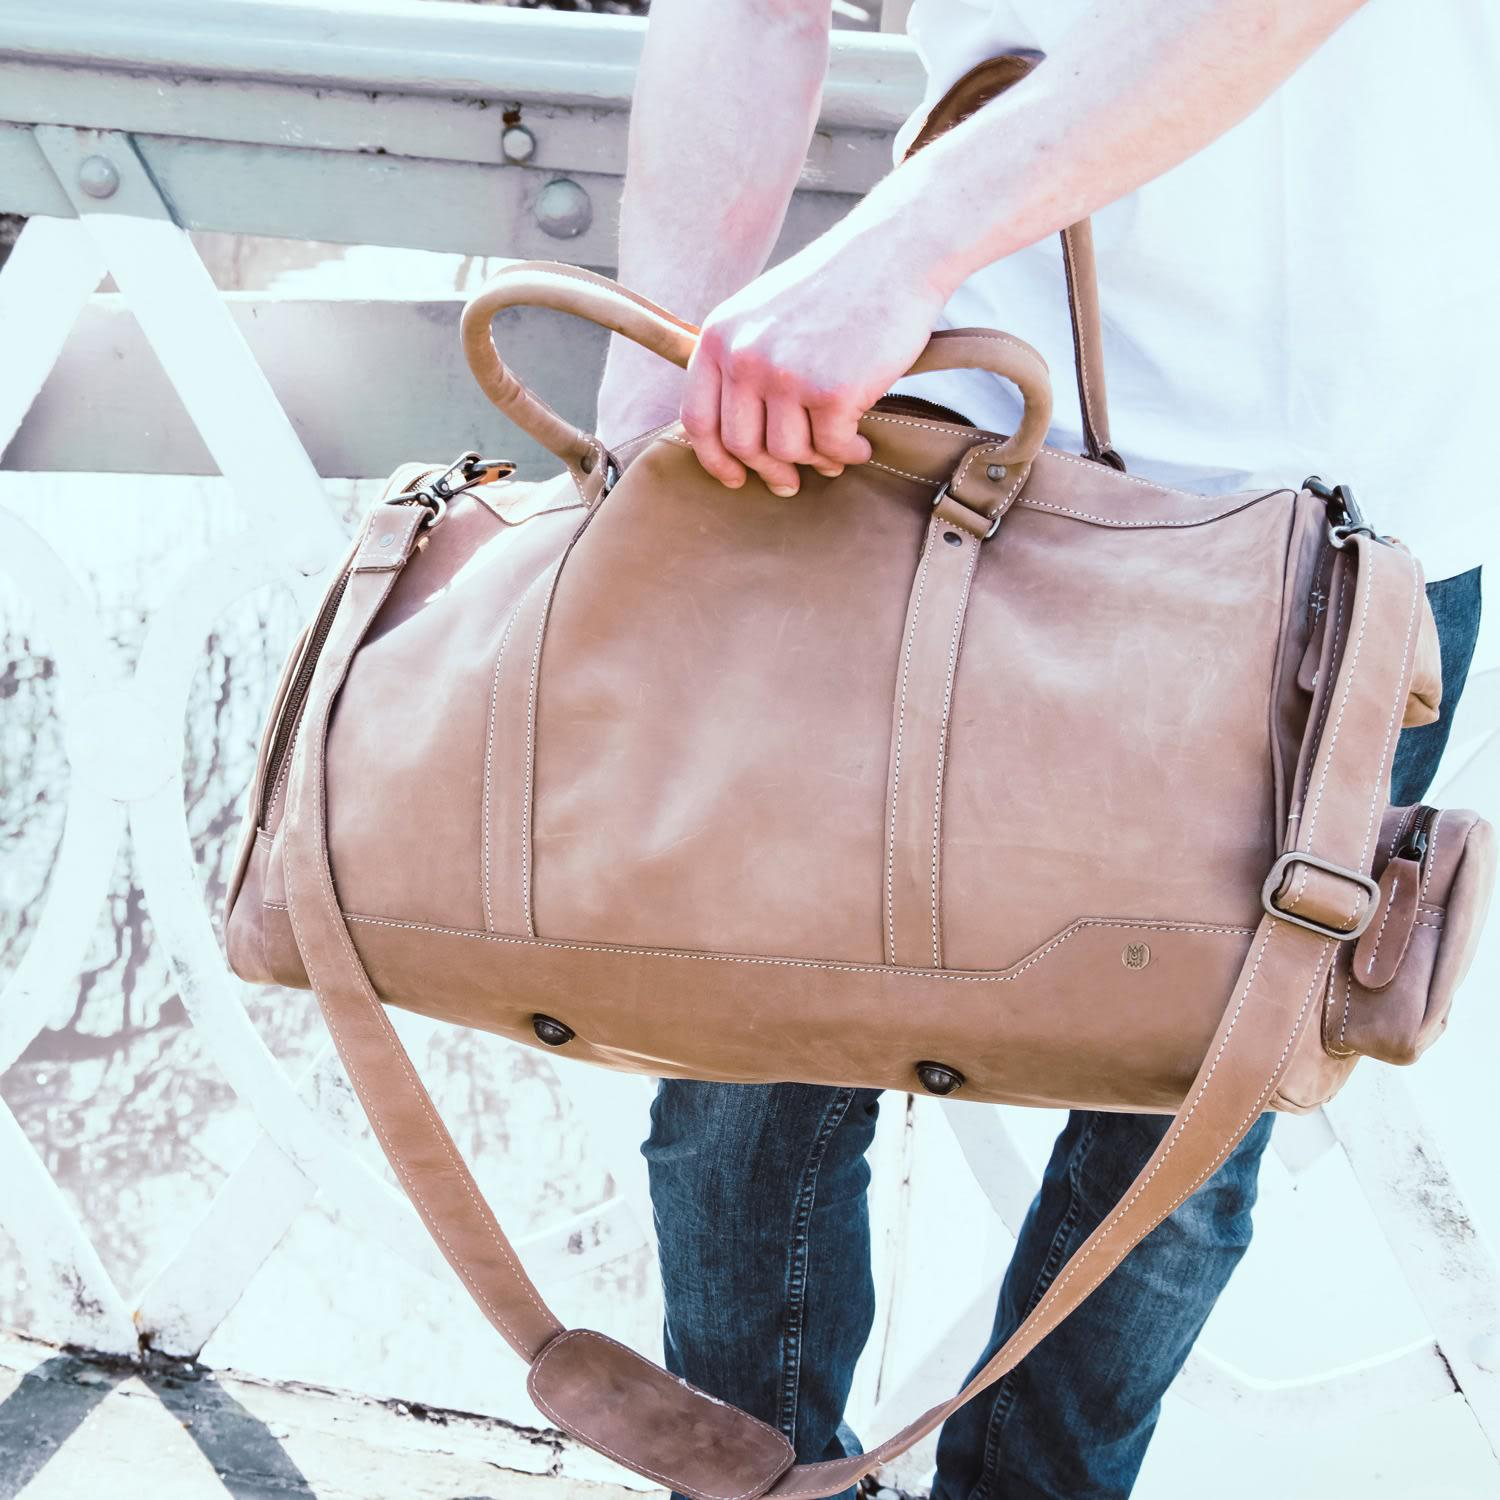 MAHI Leather - Brown Leather Columbus Holdall Duffle Weekend overnight Bag  In Vintage Cognac for. View fullscreen 918f53fe162b4